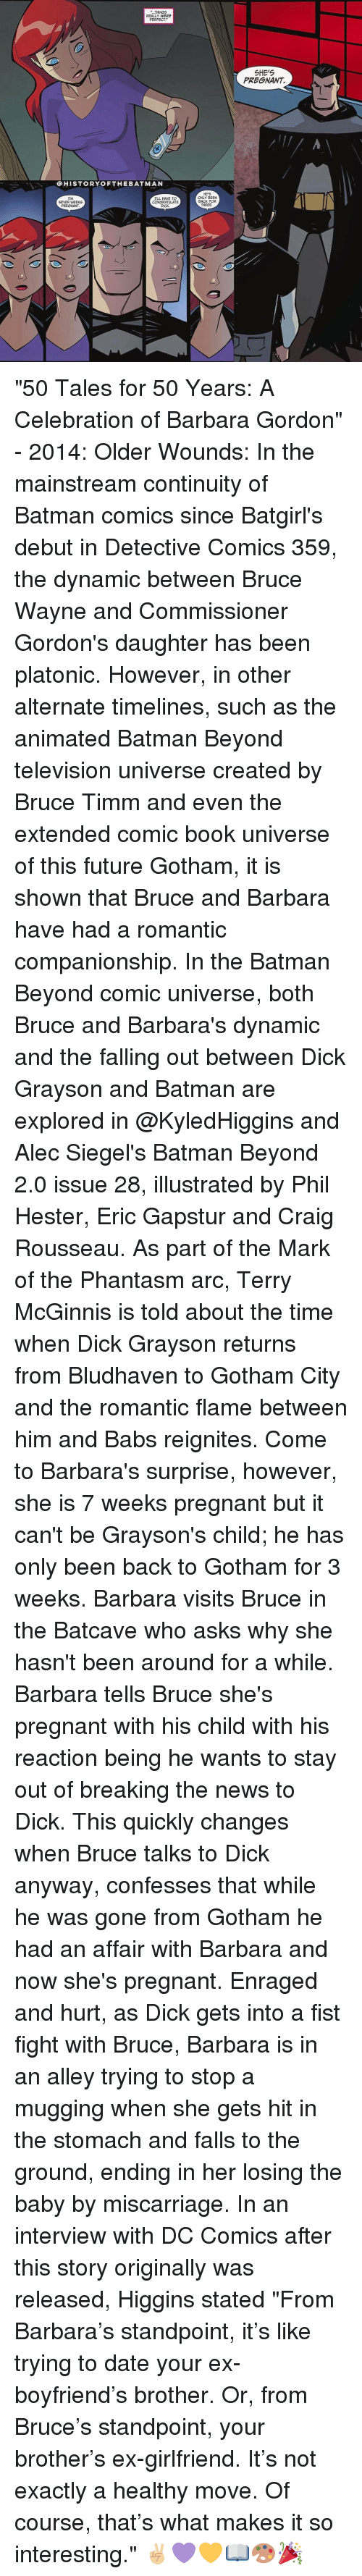 "Memes, Craig, and Gotham: THINGS  REALLY WERE  PERFECT.""  HISTORY OFT HEBATMAN  I'M  ILL HAVE TO  CONGRATULATE  SEVEN WEEKS  DICK.  PREGNANT  HE'S  ONLY BEEN  BACK FOR  THREE  SHE'S  PREGNANT ""50 Tales for 50 Years: A Celebration of Barbara Gordon"" - 2014: Older Wounds: In the mainstream continuity of Batman comics since Batgirl's debut in Detective Comics 359, the dynamic between Bruce Wayne and Commissioner Gordon's daughter has been platonic. However, in other alternate timelines, such as the animated Batman Beyond television universe created by Bruce Timm and even the extended comic book universe of this future Gotham, it is shown that Bruce and Barbara have had a romantic companionship. In the Batman Beyond comic universe, both Bruce and Barbara's dynamic and the falling out between Dick Grayson and Batman are explored in @KyledHiggins and Alec Siegel's Batman Beyond 2.0 issue 28, illustrated by Phil Hester, Eric Gapstur and Craig Rousseau. As part of the Mark of the Phantasm arc, Terry McGinnis is told about the time when Dick Grayson returns from Bludhaven to Gotham City and the romantic flame between him and Babs reignites. Come to Barbara's surprise, however, she is 7 weeks pregnant but it can't be Grayson's child; he has only been back to Gotham for 3 weeks. Barbara visits Bruce in the Batcave who asks why she hasn't been around for a while. Barbara tells Bruce she's pregnant with his child with his reaction being he wants to stay out of breaking the news to Dick. This quickly changes when Bruce talks to Dick anyway, confesses that while he was gone from Gotham he had an affair with Barbara and now she's pregnant. Enraged and hurt, as Dick gets into a fist fight with Bruce, Barbara is in an alley trying to stop a mugging when she gets hit in the stomach and falls to the ground, ending in her losing the baby by miscarriage. In an interview with DC Comics after this story originally was released, Higgins stated ""From Barbara's standpoint, it's like trying to date your ex-boyfriend's brother. Or, from Bruce's standpoint, your brother's ex-girlfriend. It's not exactly a healthy move. Of course, that's what makes it so interesting."" ✌🏼💜💛📖🎨🎉"